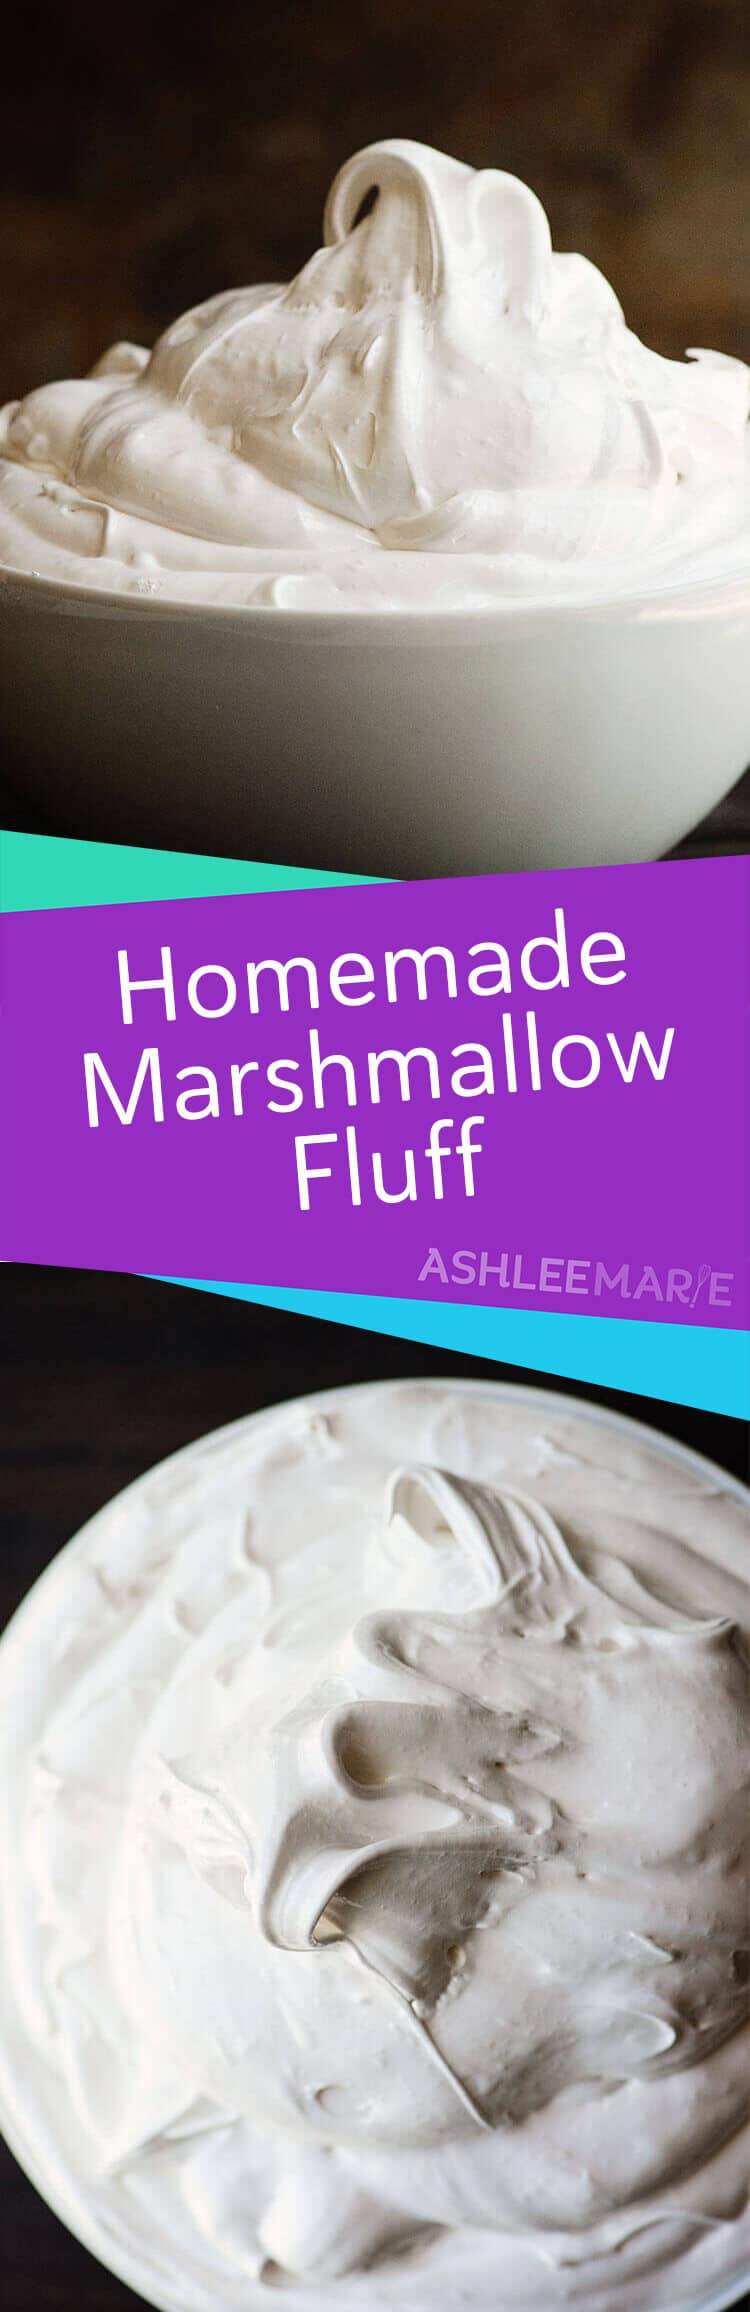 A recipe and video tutorial for making your own Homemade Marshmallow Fluff. Perfect for dipping, topping, frosting and more! | Ashlee Marie | Summer | Marshmallow Fluff | Marshmallow | Dessert | Frosting | #ashleemarie #marshmallowfluff #summer #dessert #marshmallow